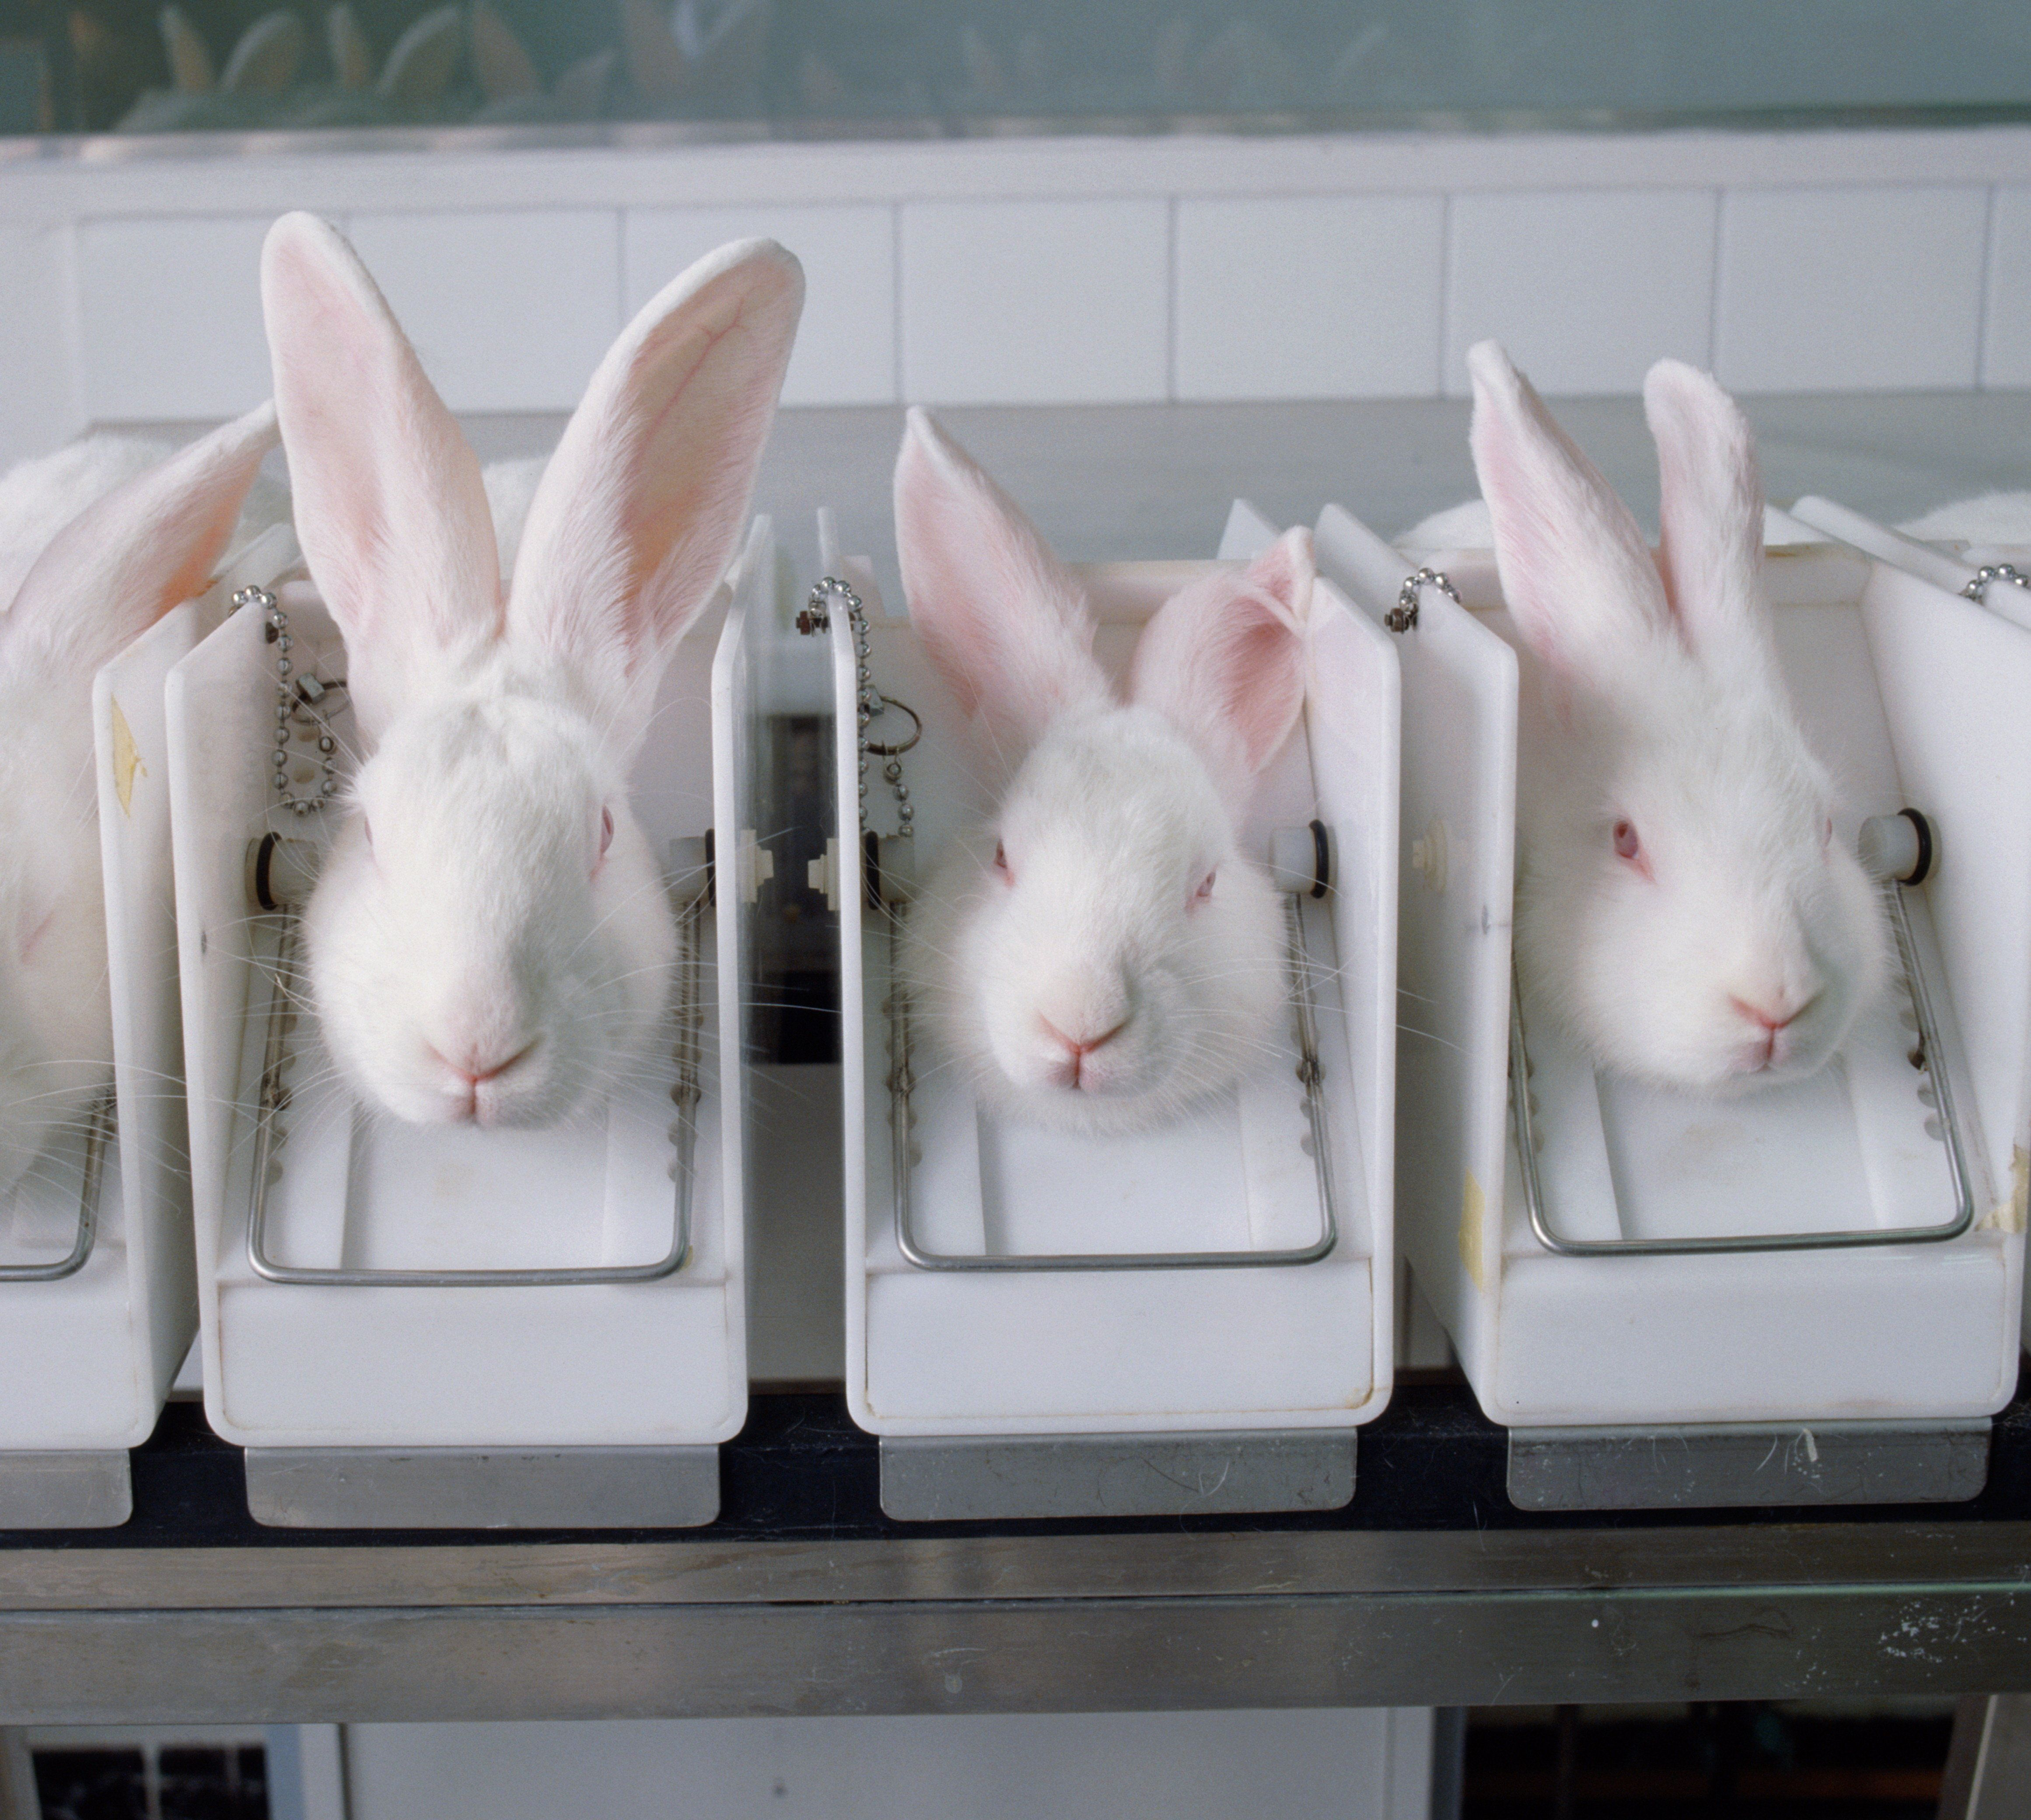 is mac tested on animals 2013